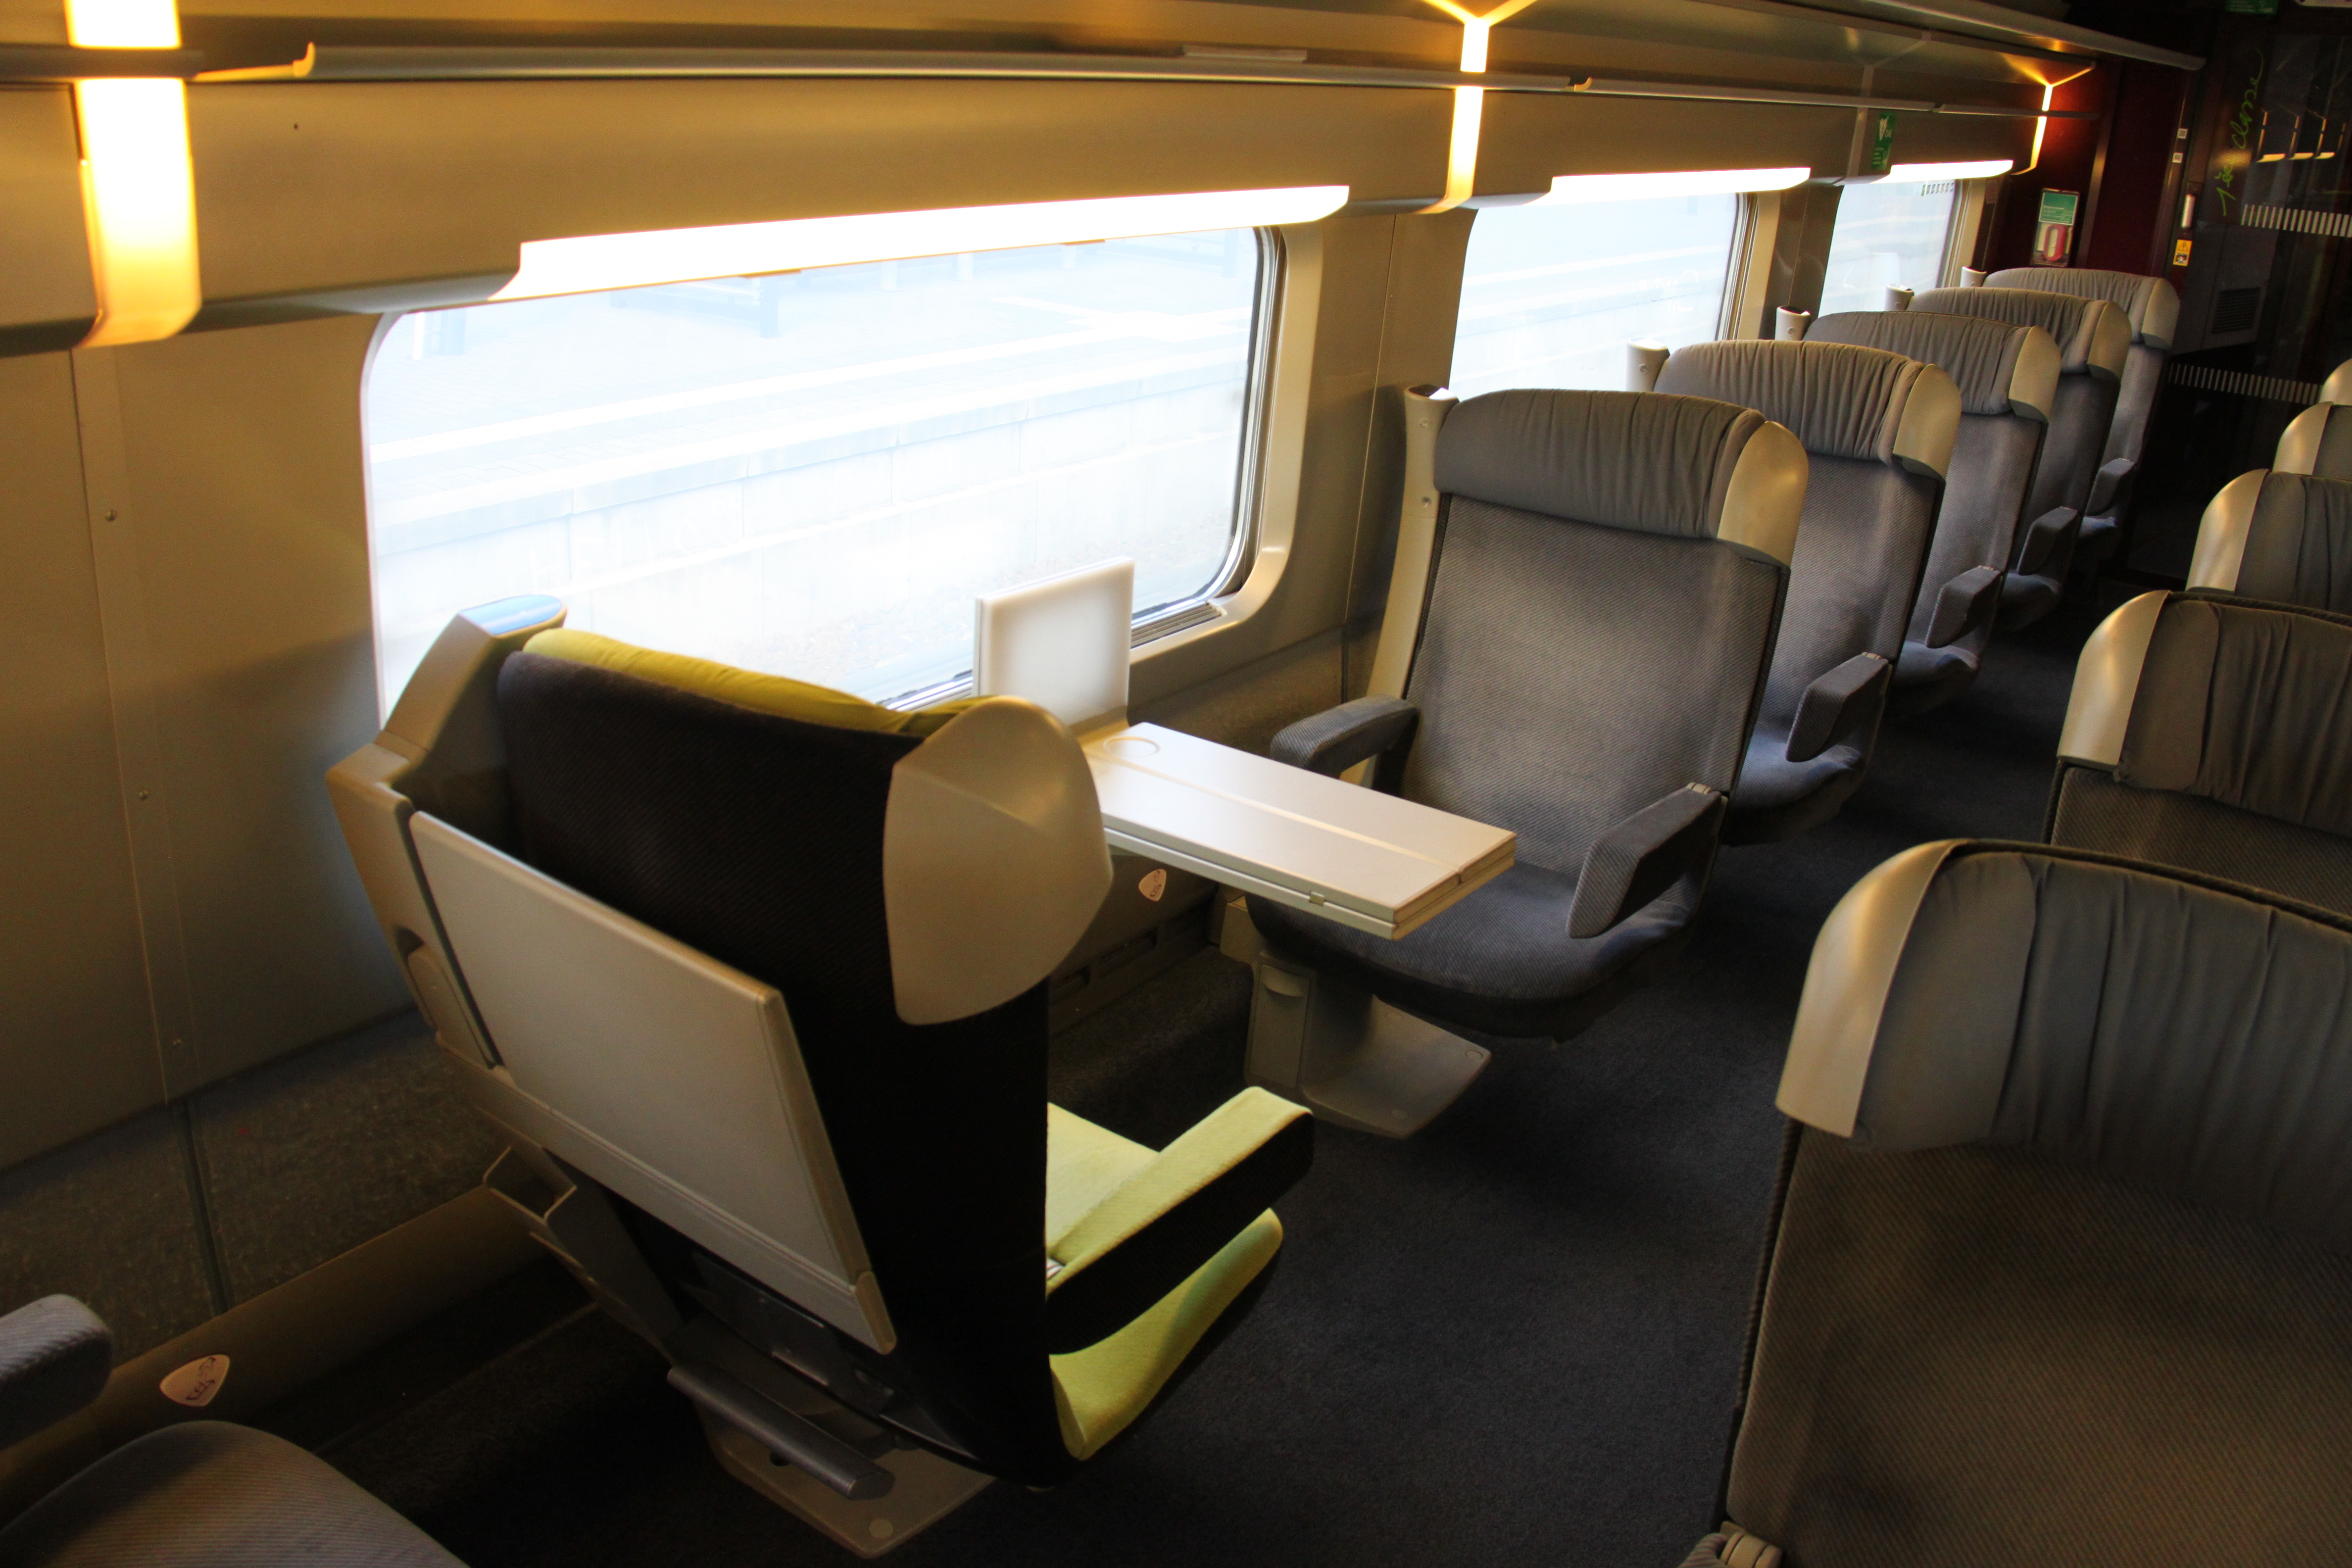 Design Interieur Tgv File Tgv Lacroix First Class Interior Detail Jpg